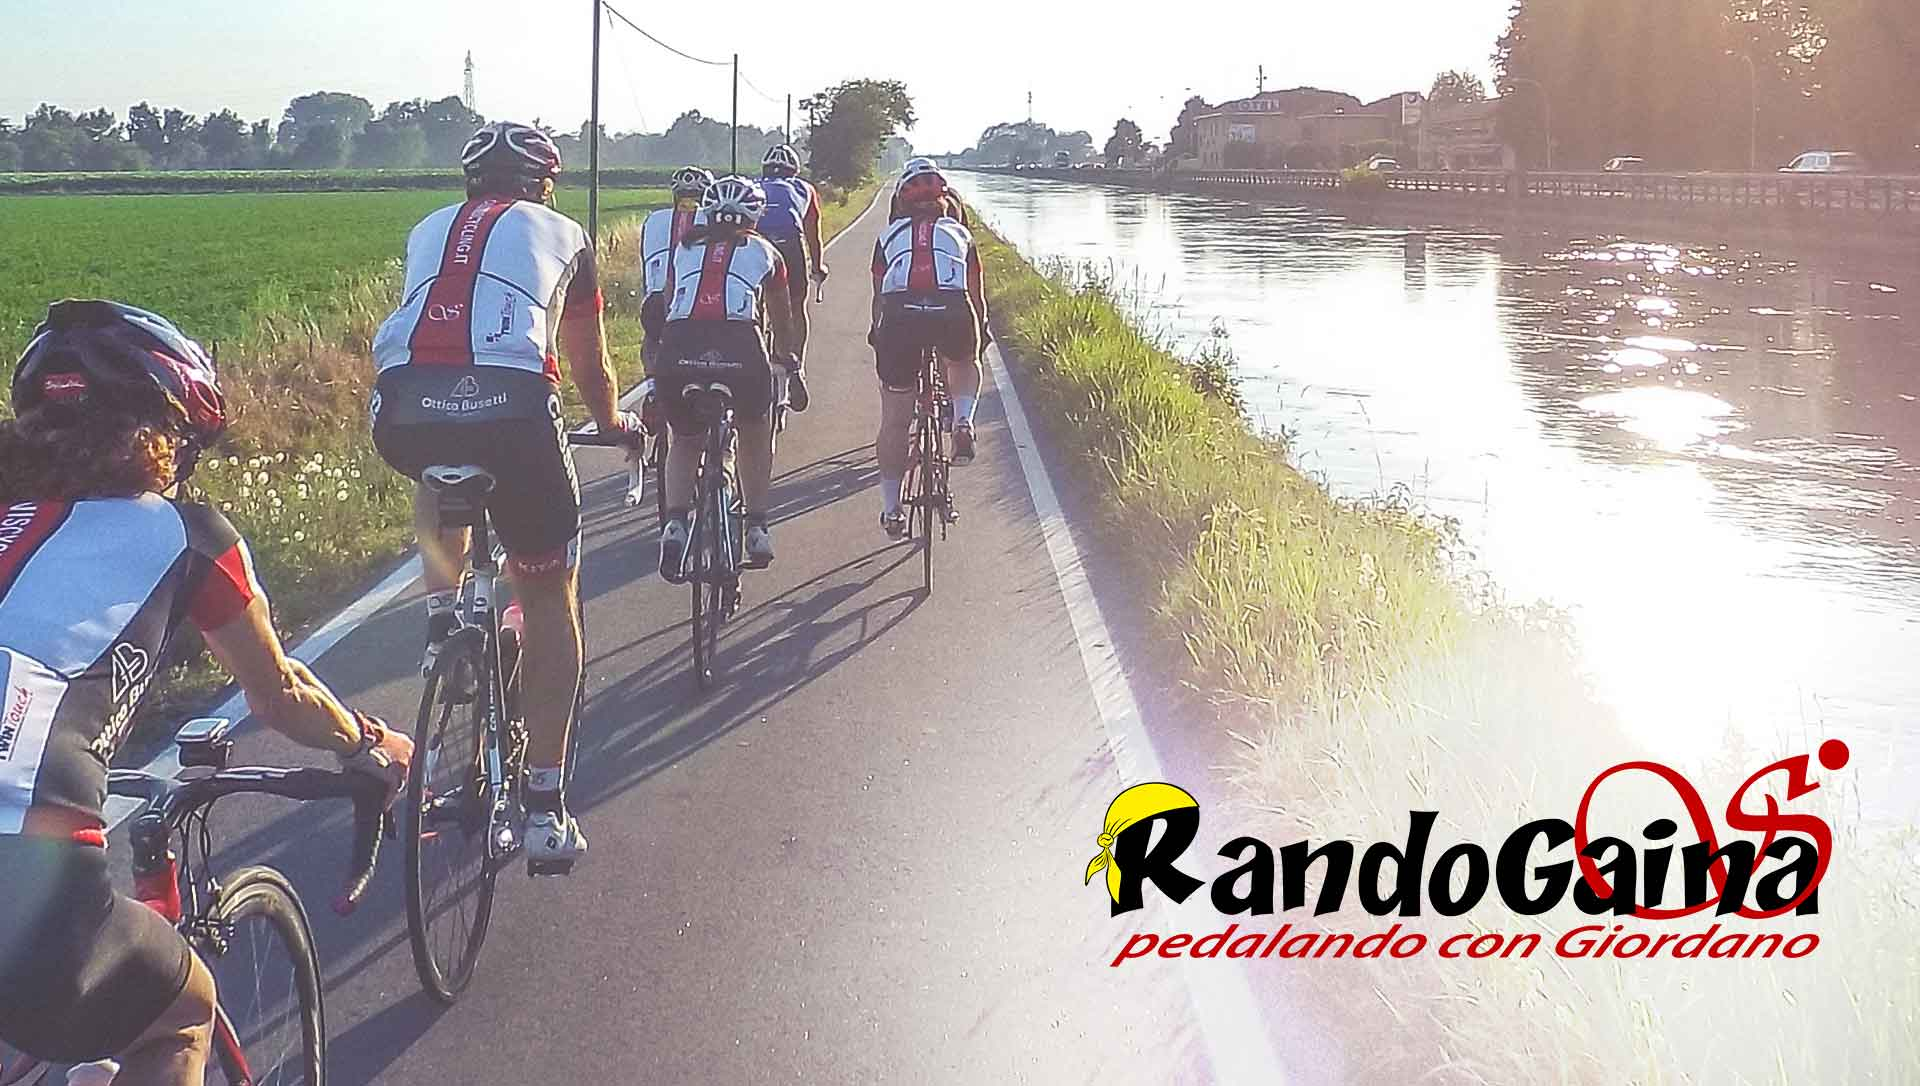 Marcello Bergamo e Team Cassinis al Randogaina 2019